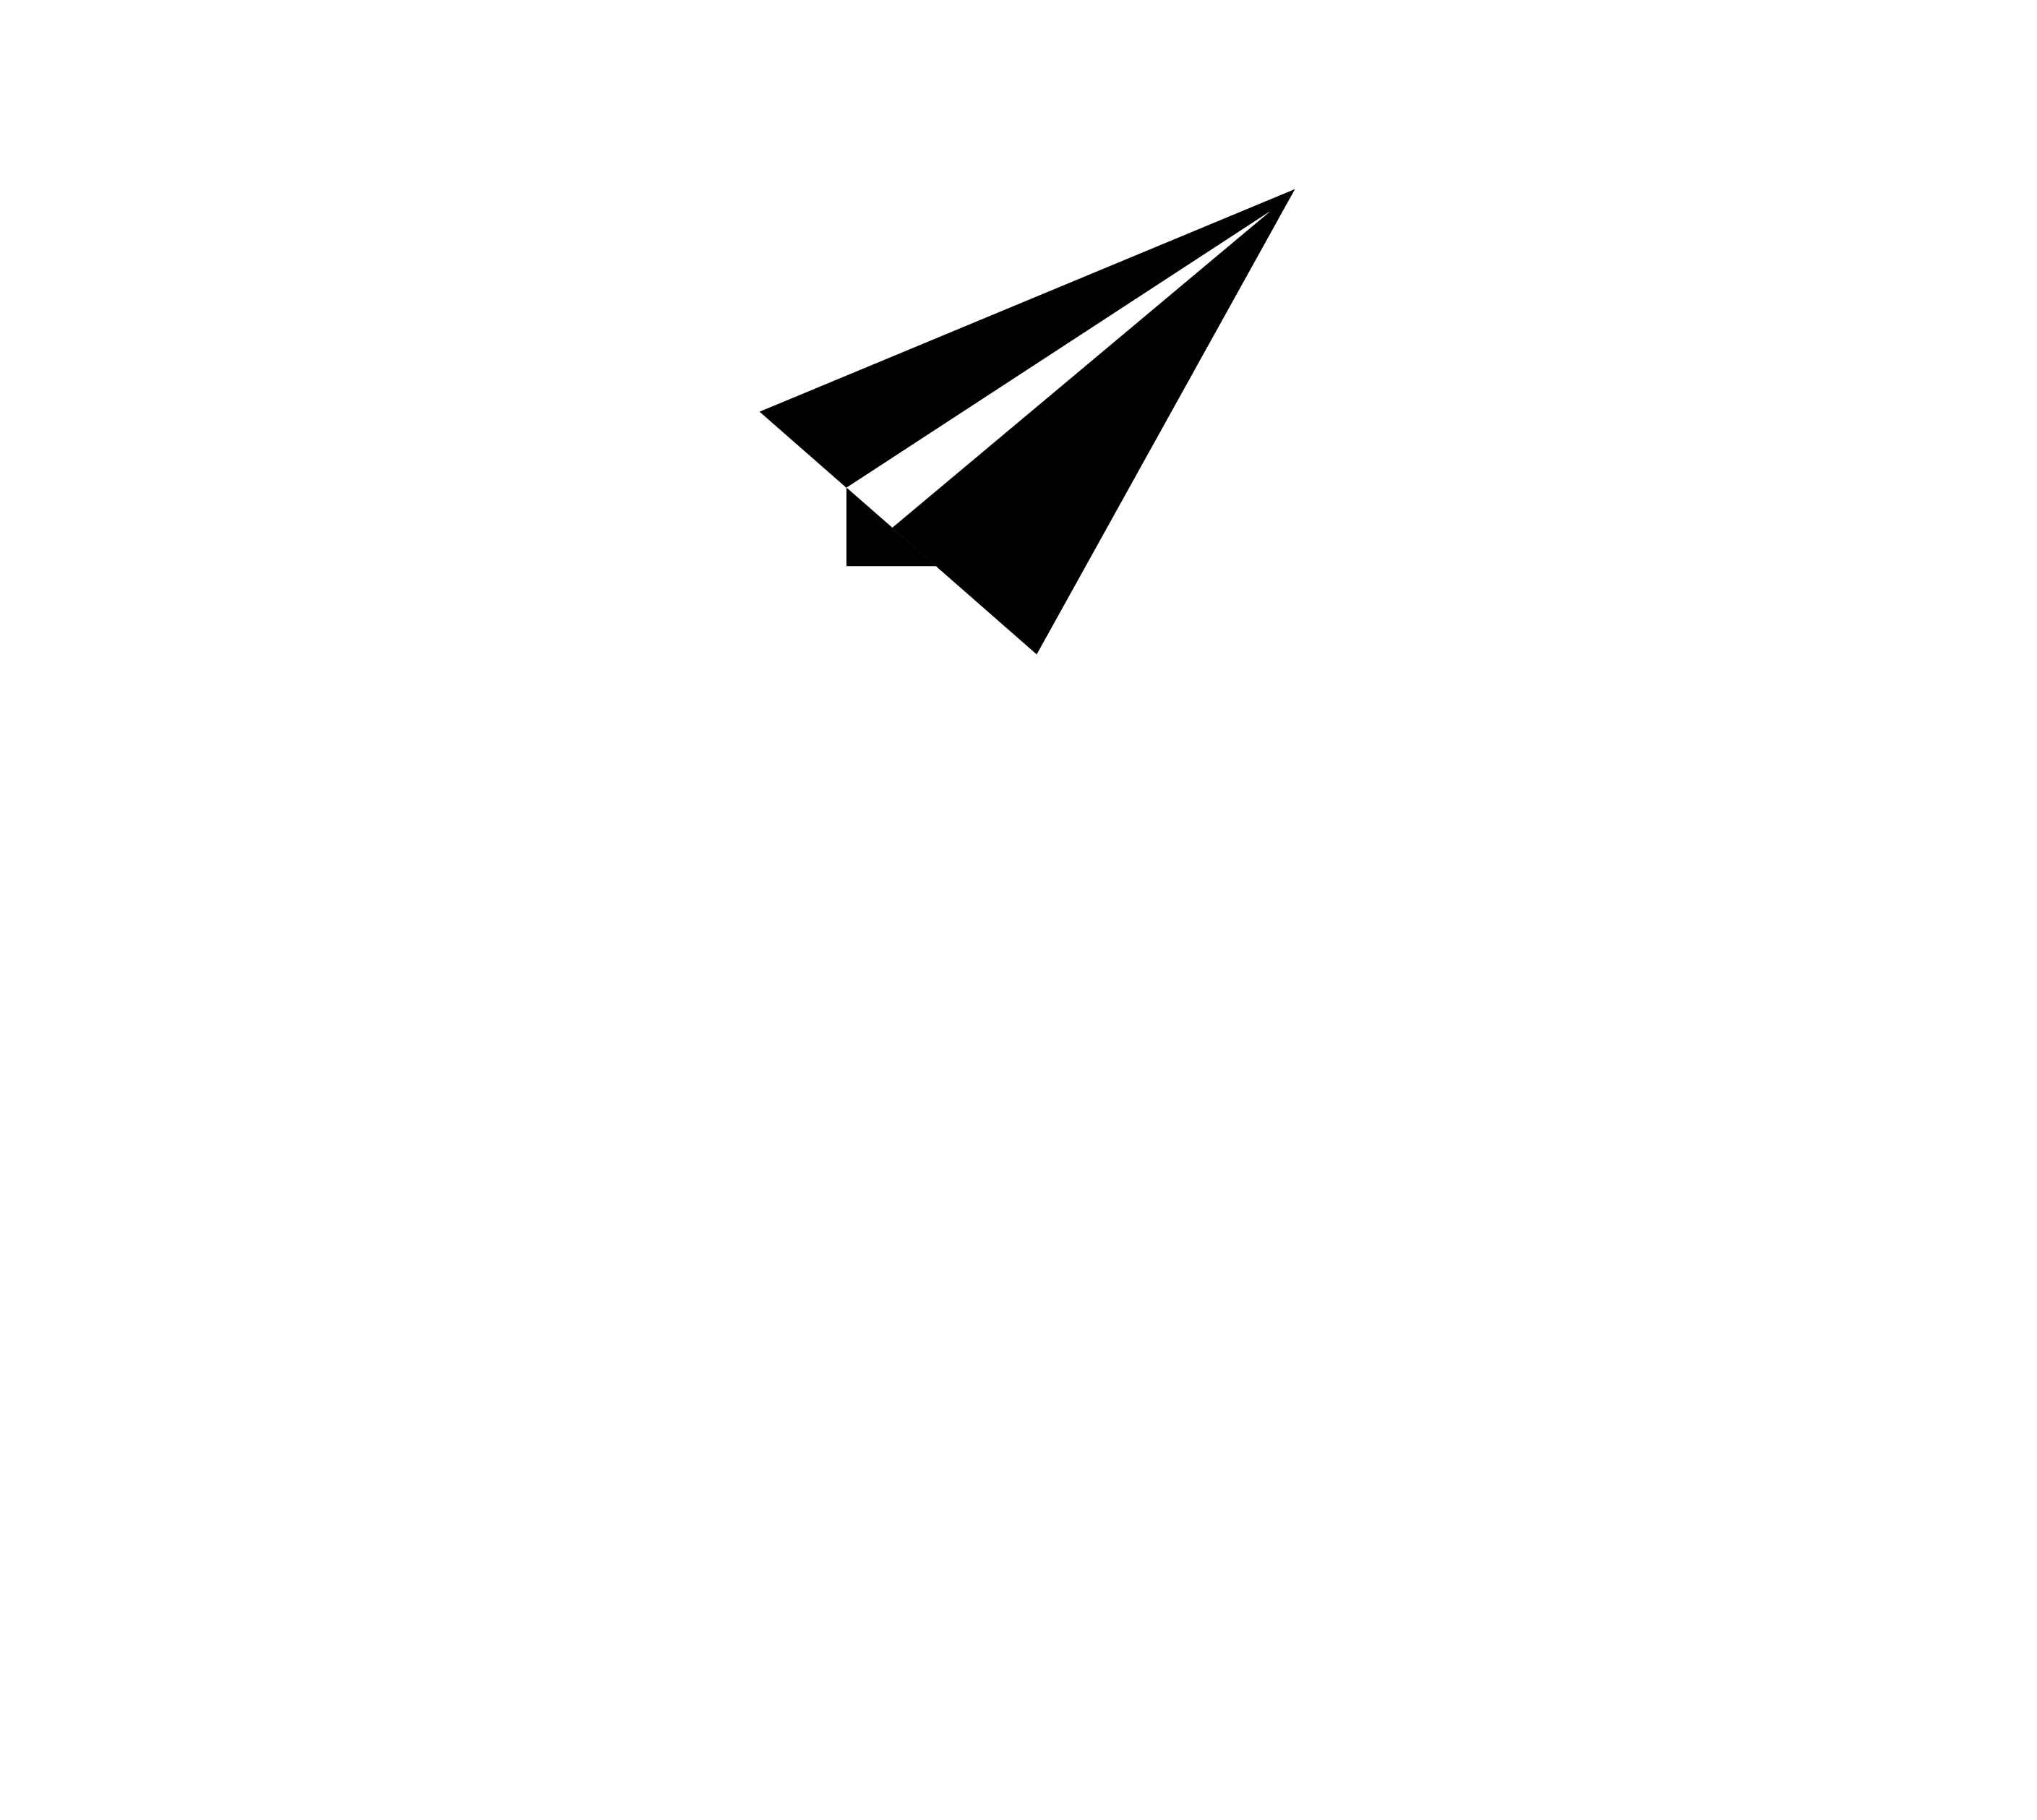 Mission Story